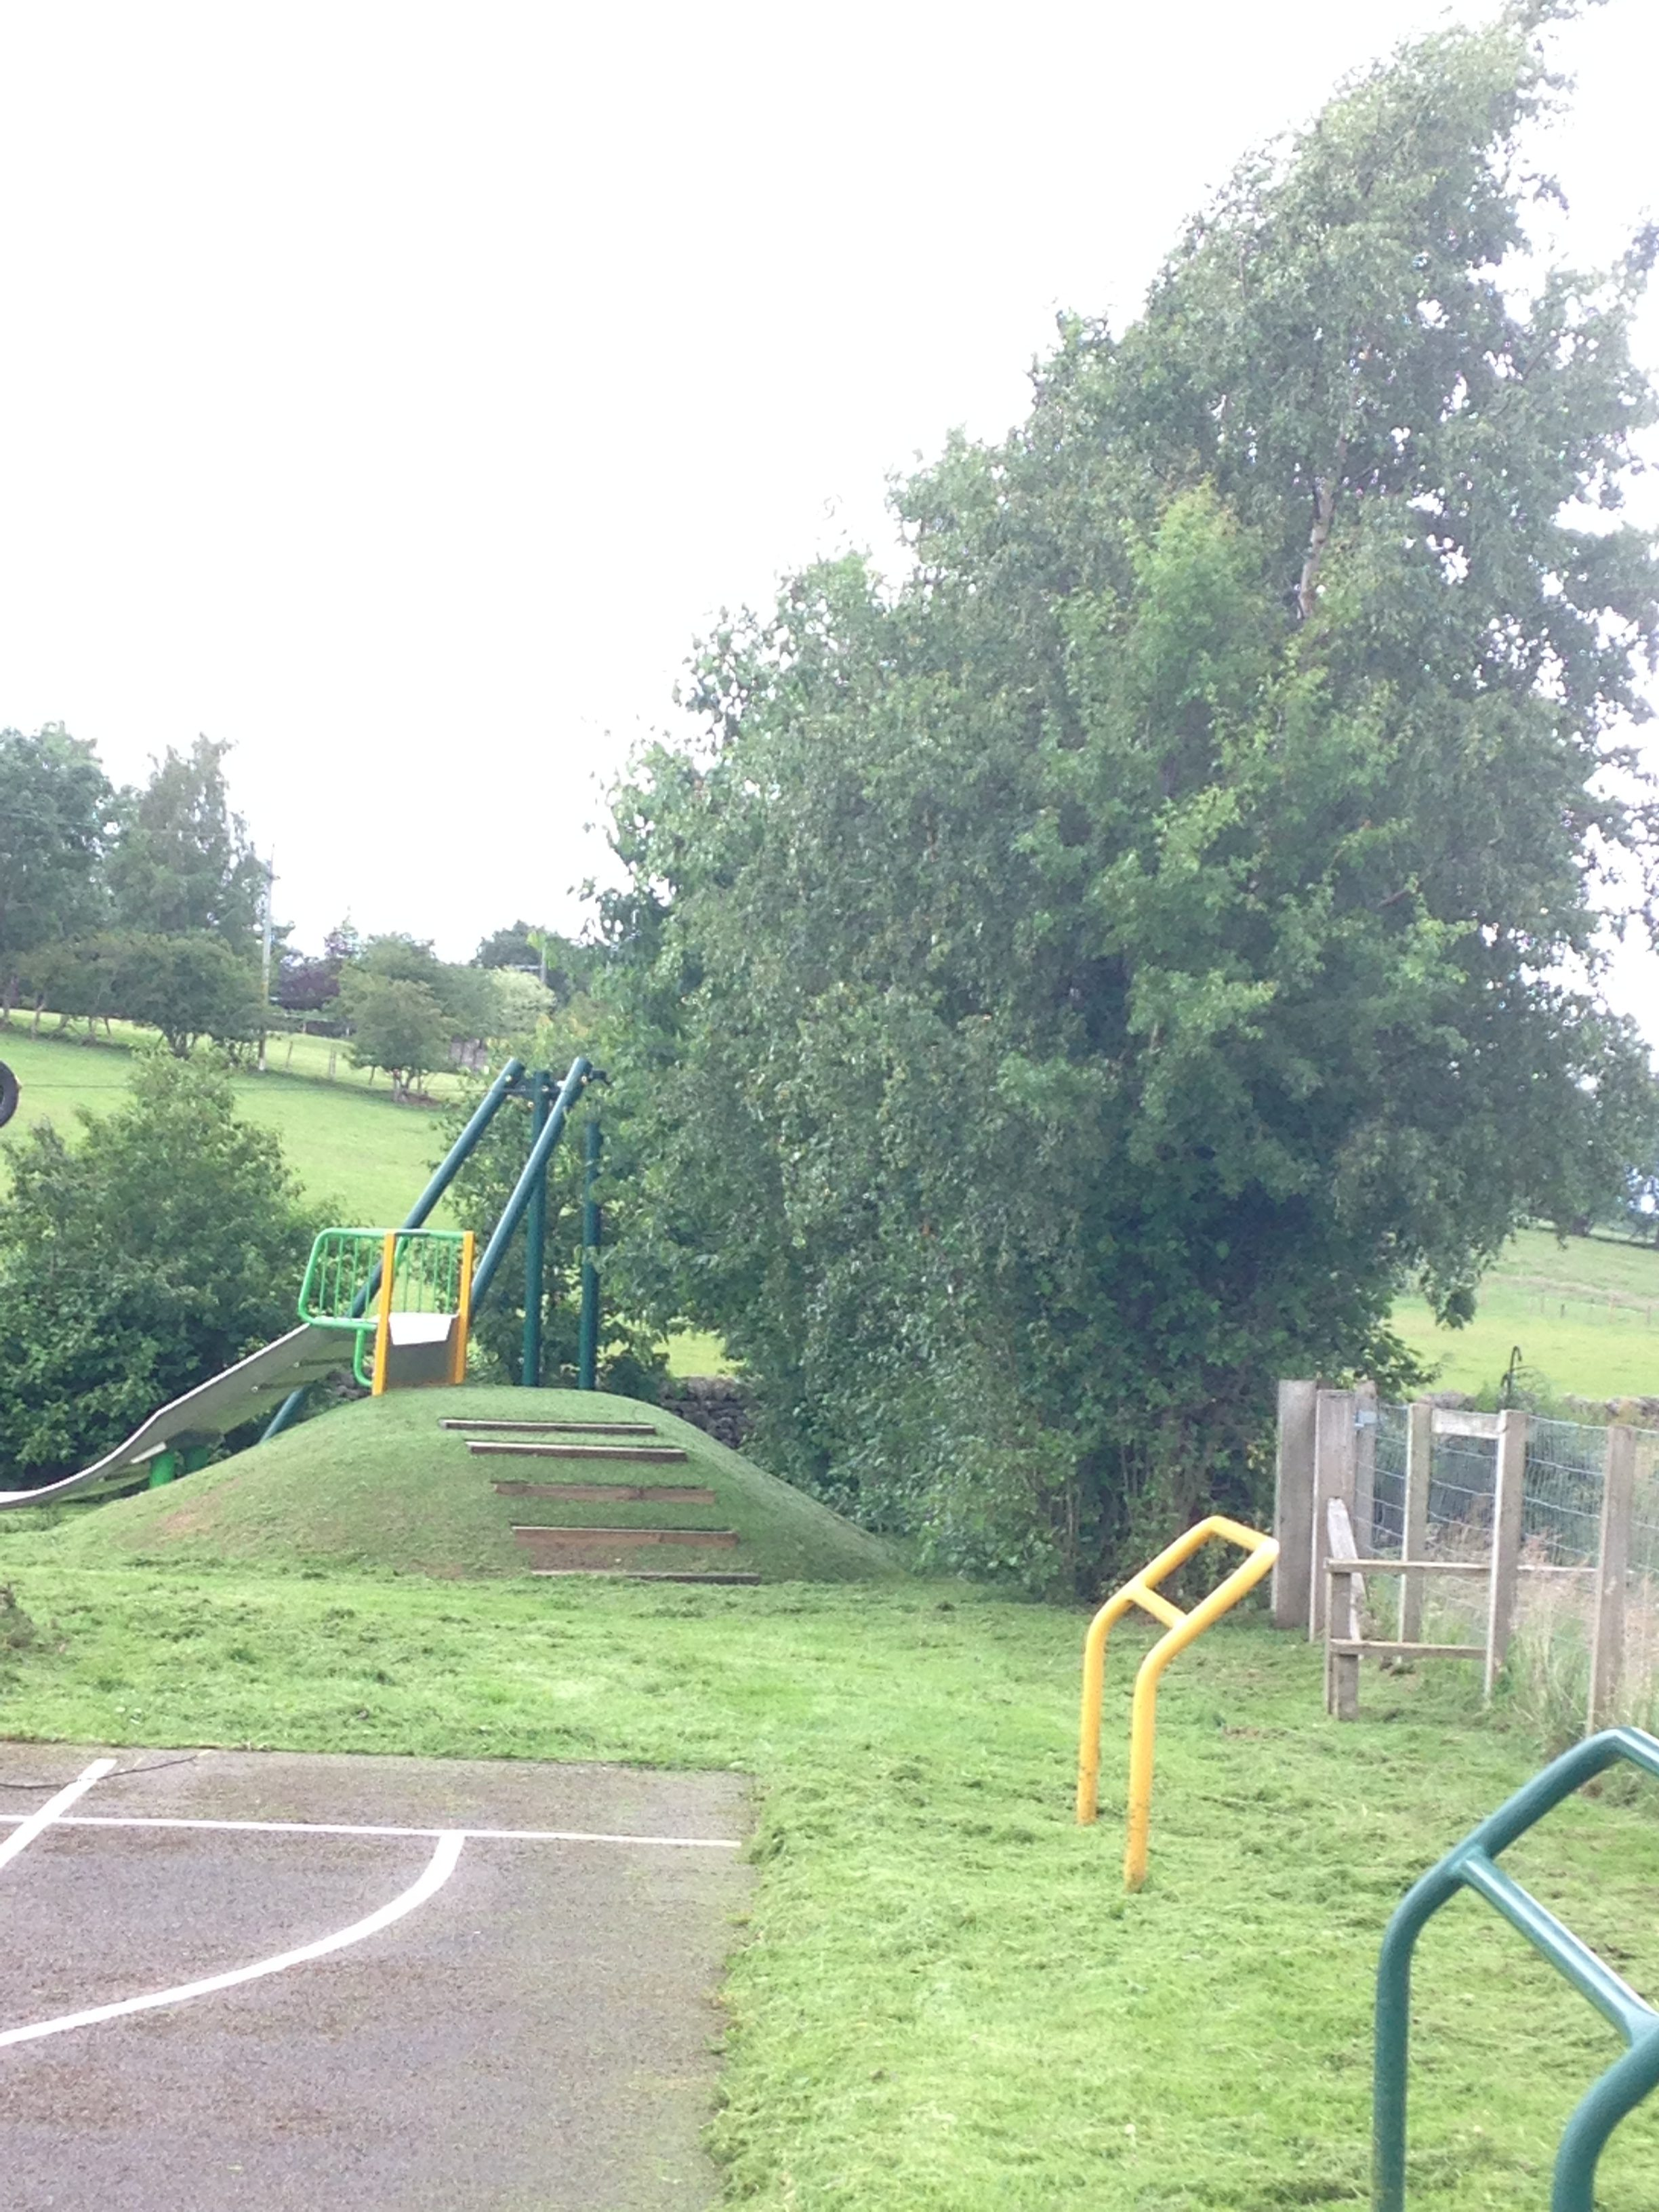 Play Park side